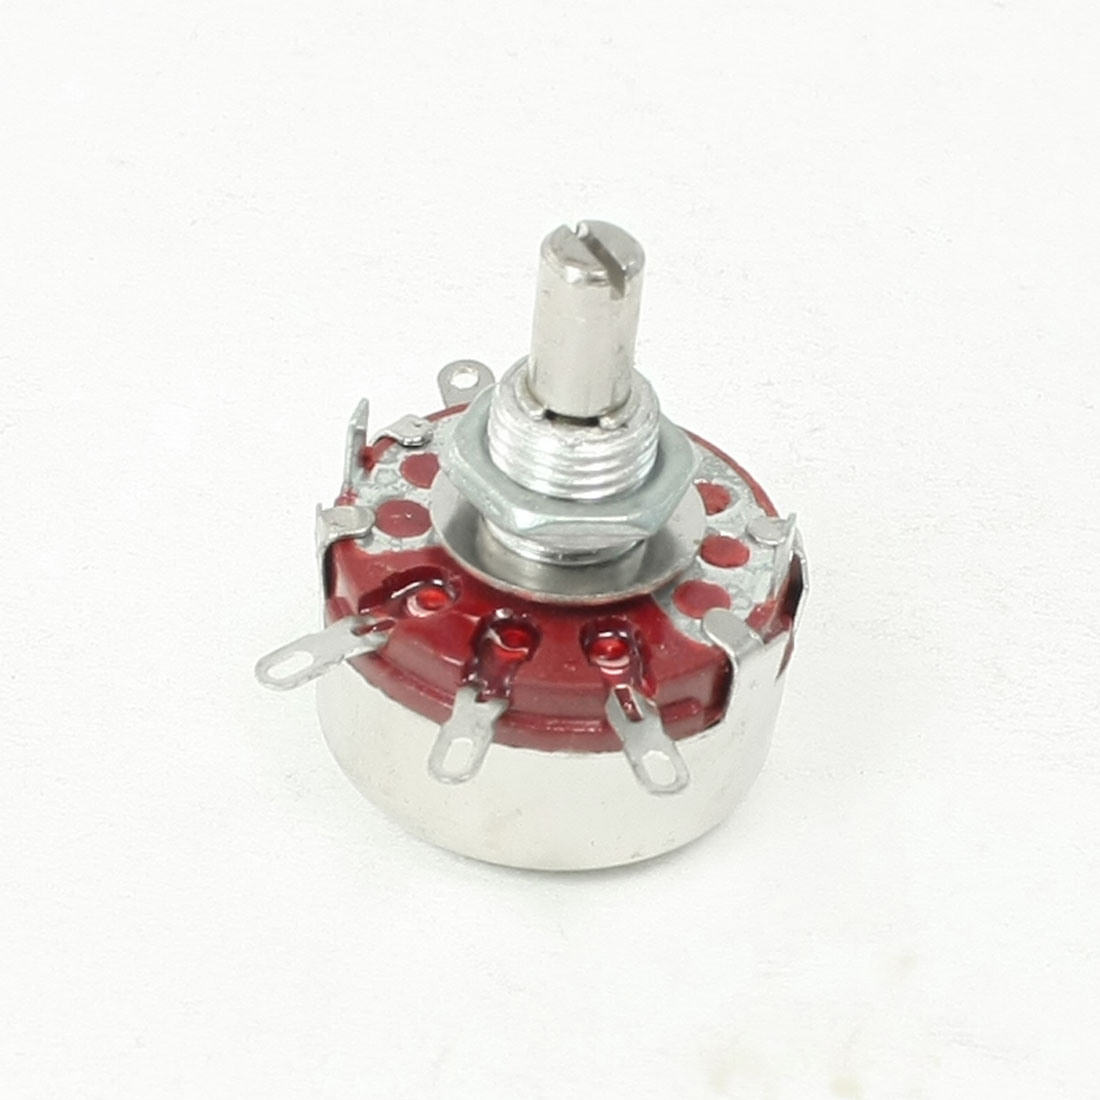 22K ohm 2W Watt Single Turn Rotary Linear Taper Carbon Potentiometer WTH118